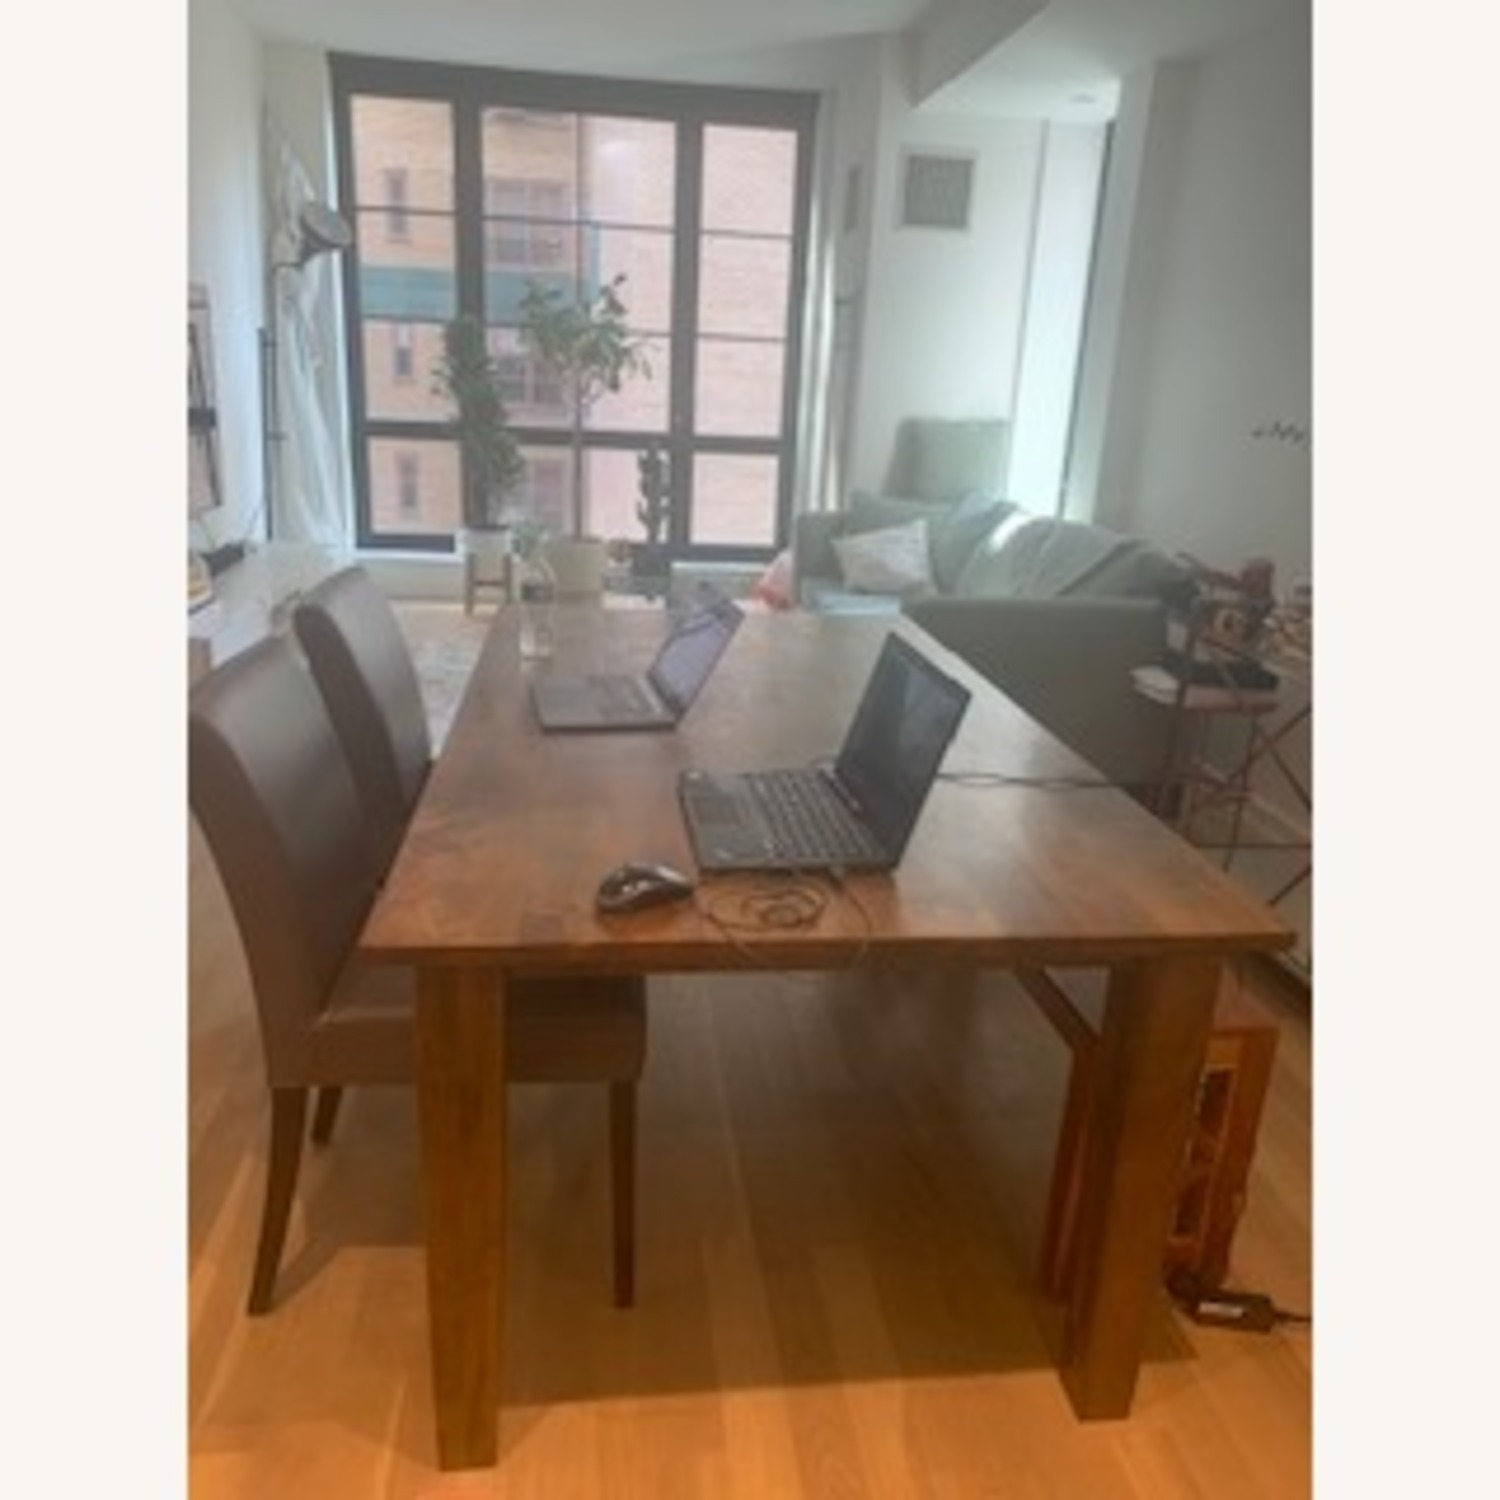 Crate & Barrel Wood Dining Table Set - image-1